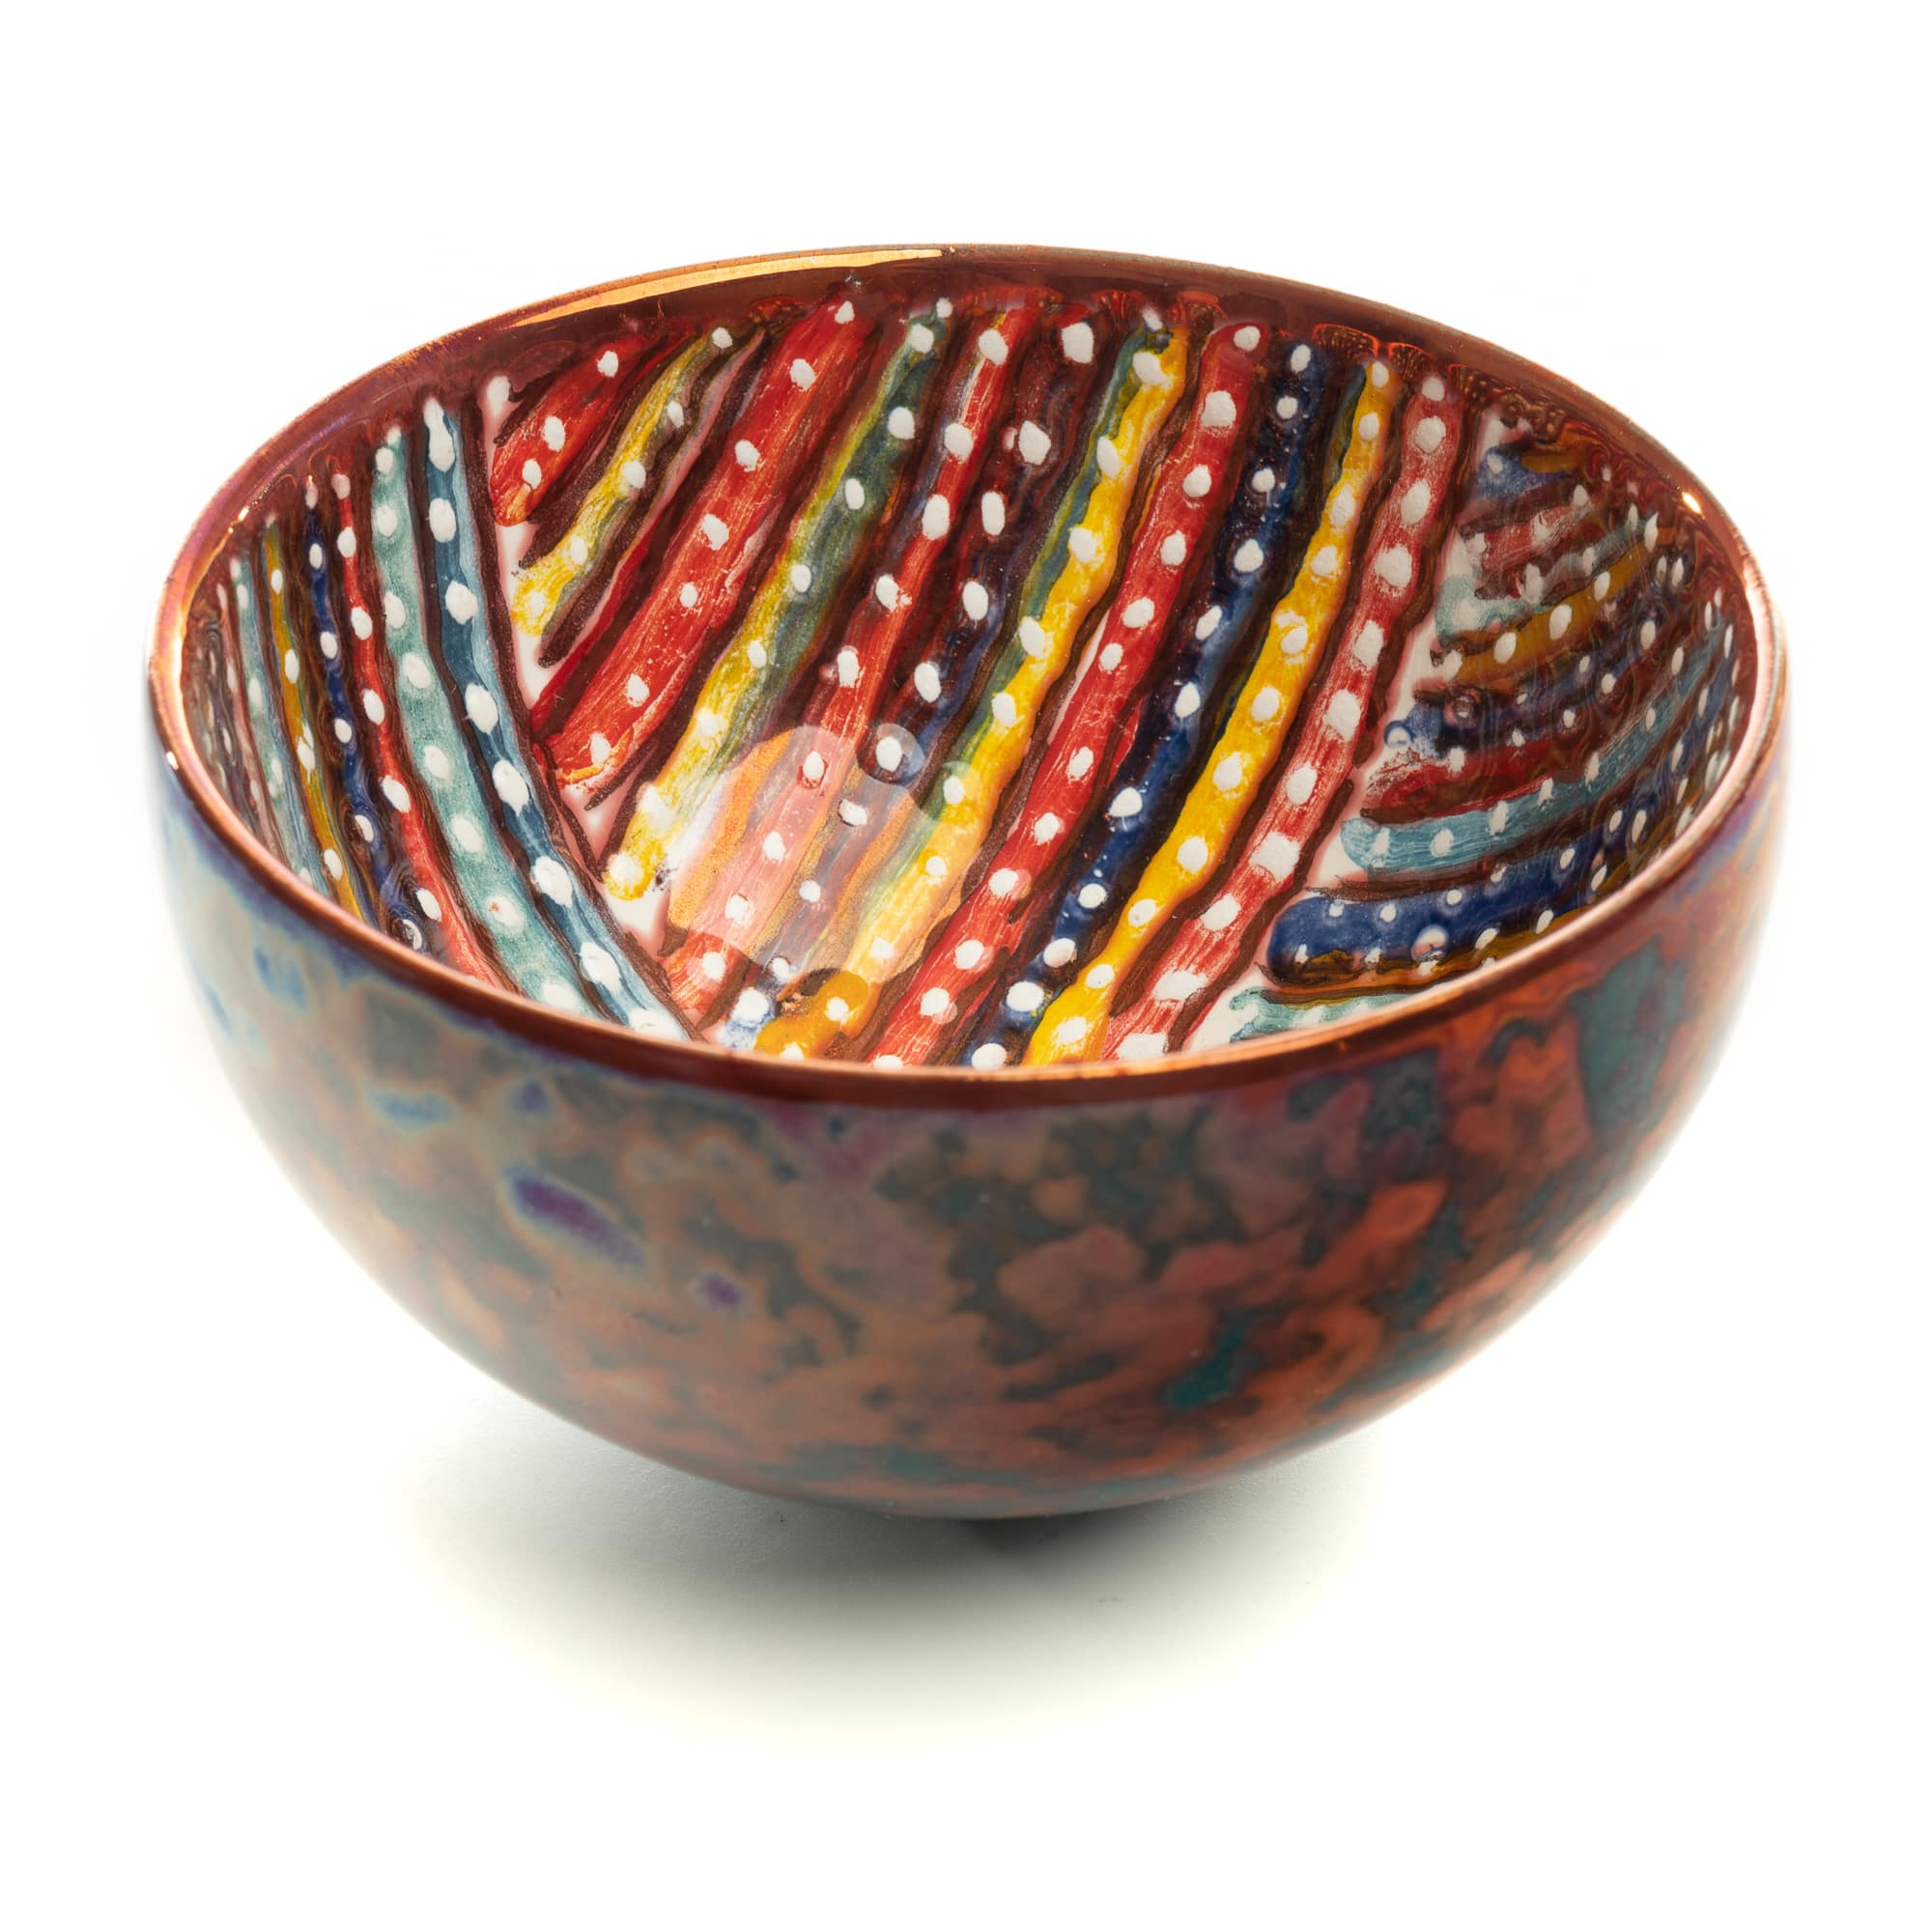 Vignoli Small Bowl Multicolor Teal Geometric Stripes